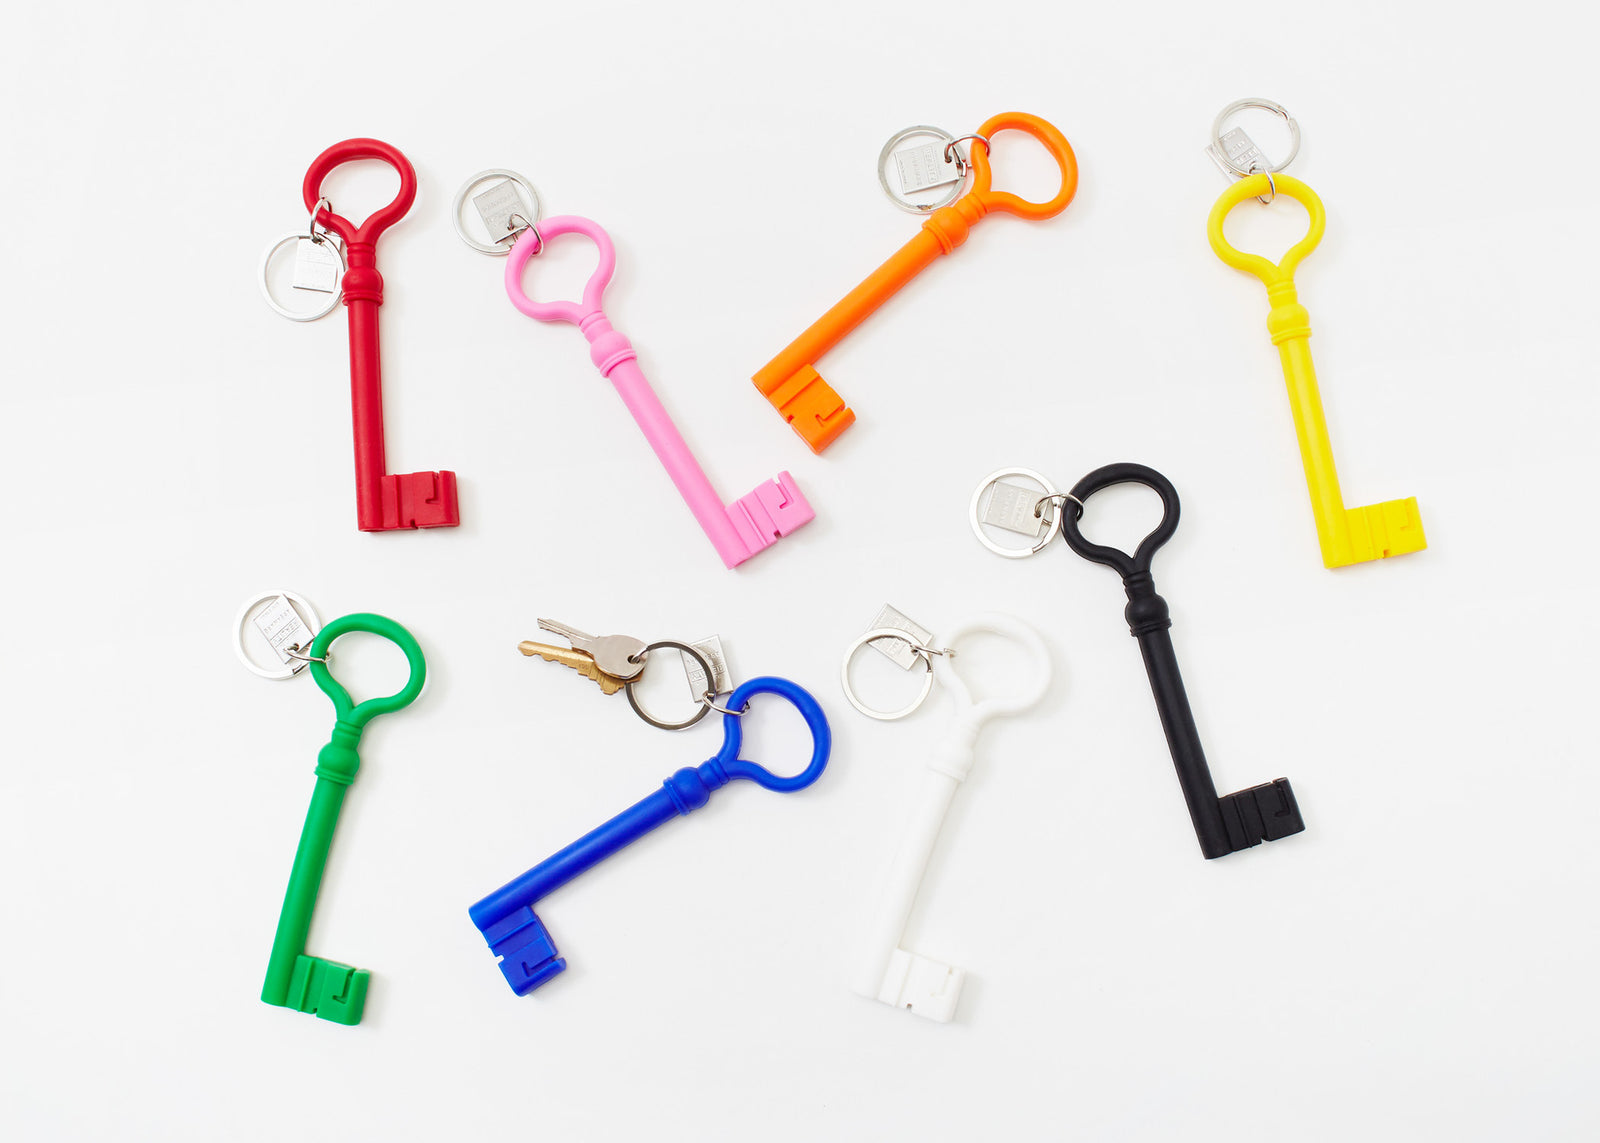 Reality Keychain Key - Red